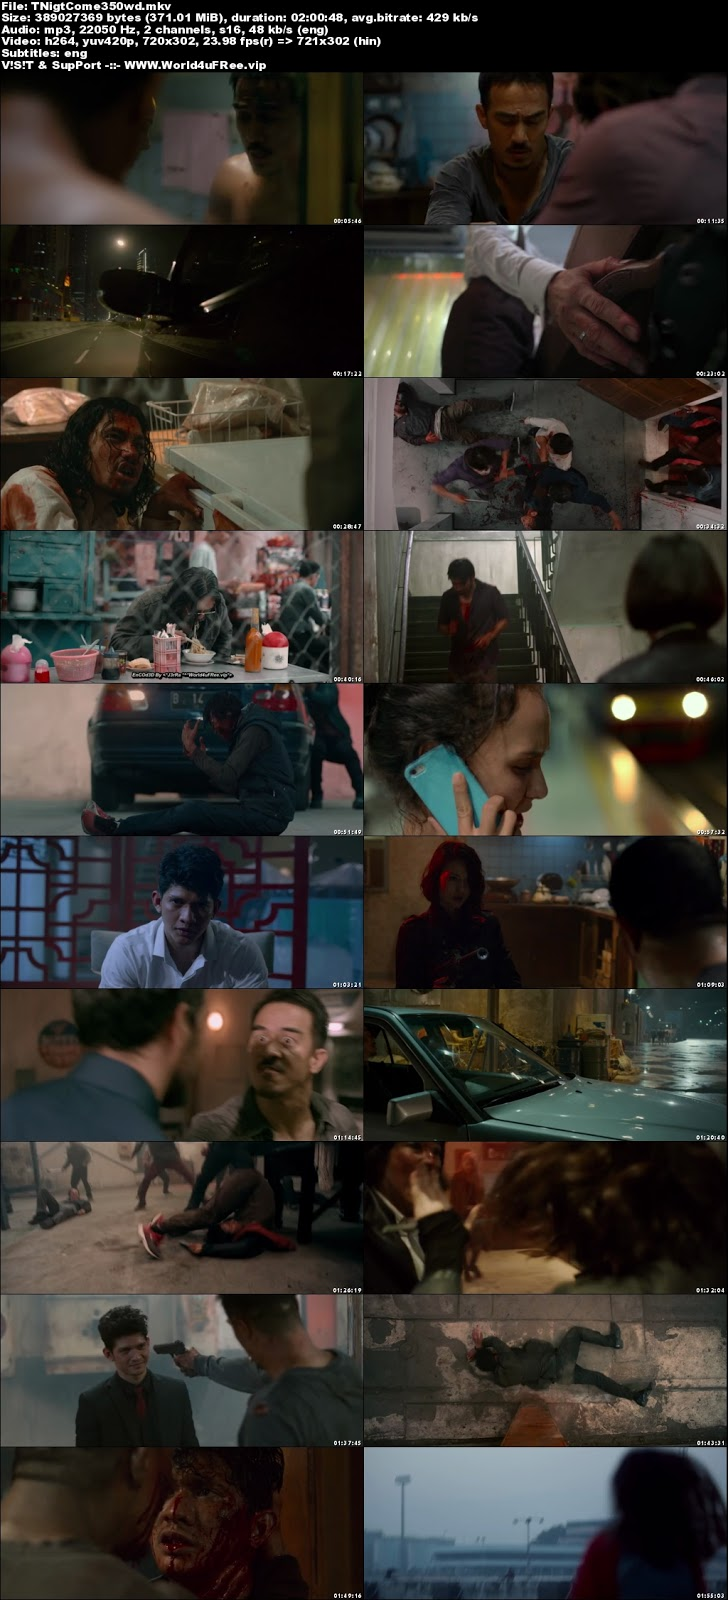 The Night Comes for Us 2018 Eng HDRip 480p 350Mb ESub x264 world4ufree.fun hollywood movie The Night Comes for Us 2018 and The Night Comes for Us 2018 brrip hd rip dvd rip web rip 300mb 480p compressed small size free download or watch online at world4ufree.fun